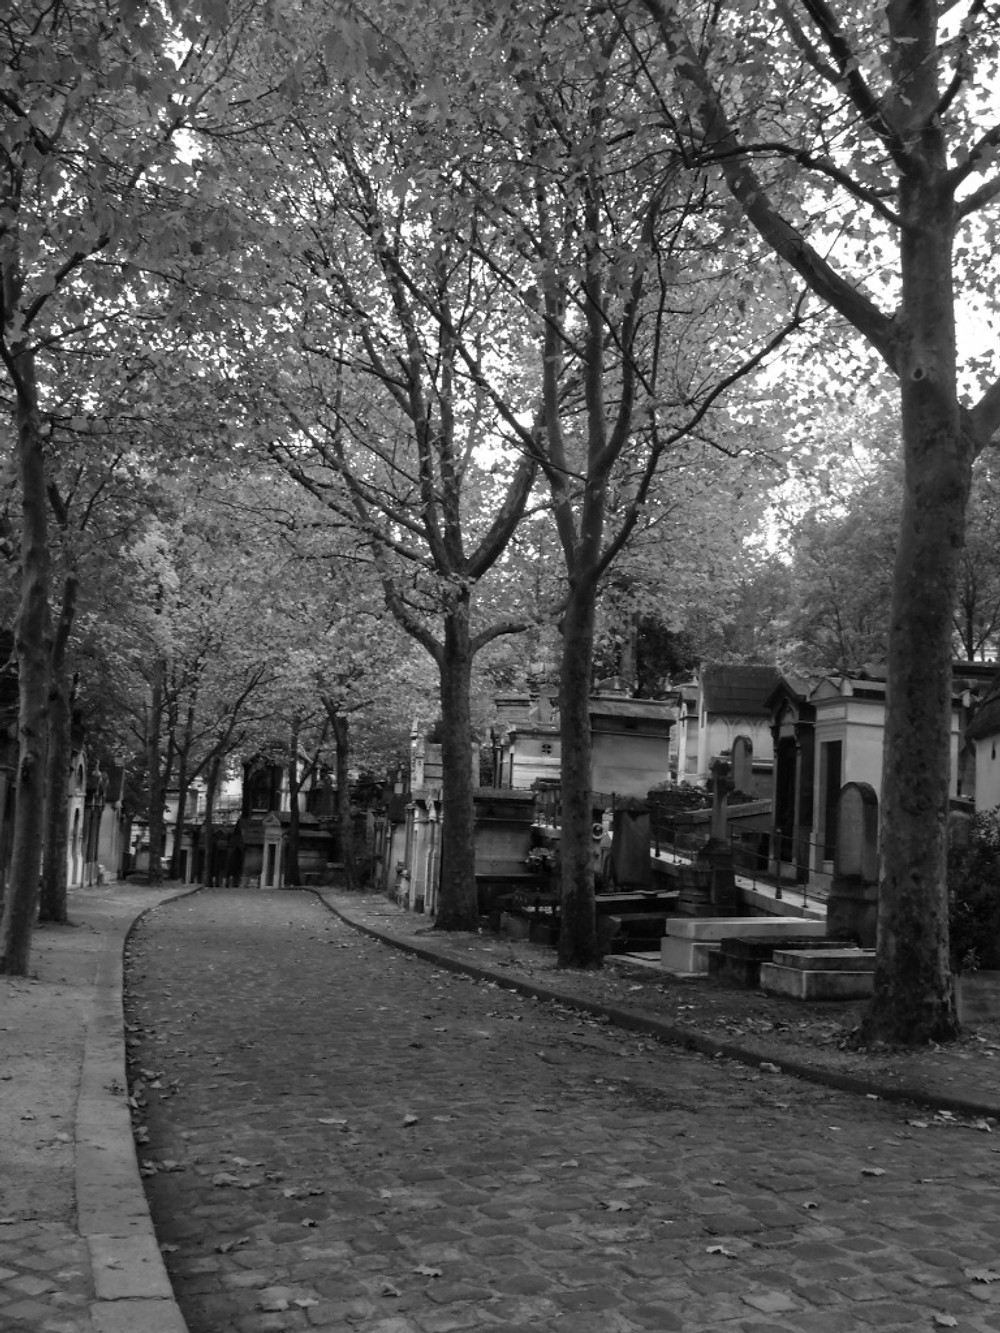 We went to Pere Lachaise on our first day, Dan's only request for the trip. The soles of my feet were still feeling like sharp needles thanks to the meds still leaving my system, but with lots of foot rest breaks we were able to get out there and stroll amongst the trees. No, there are no photos of Jim Morrison's grave. Neither of us cared too much for him and when we happened to see it, we were disgusted at how the gravesite had been littered with fan crap. Think wads of gum and trinkets and plastic crap defacing an otherwise gorgeous cemetery. Shame on Paris for allowing this.